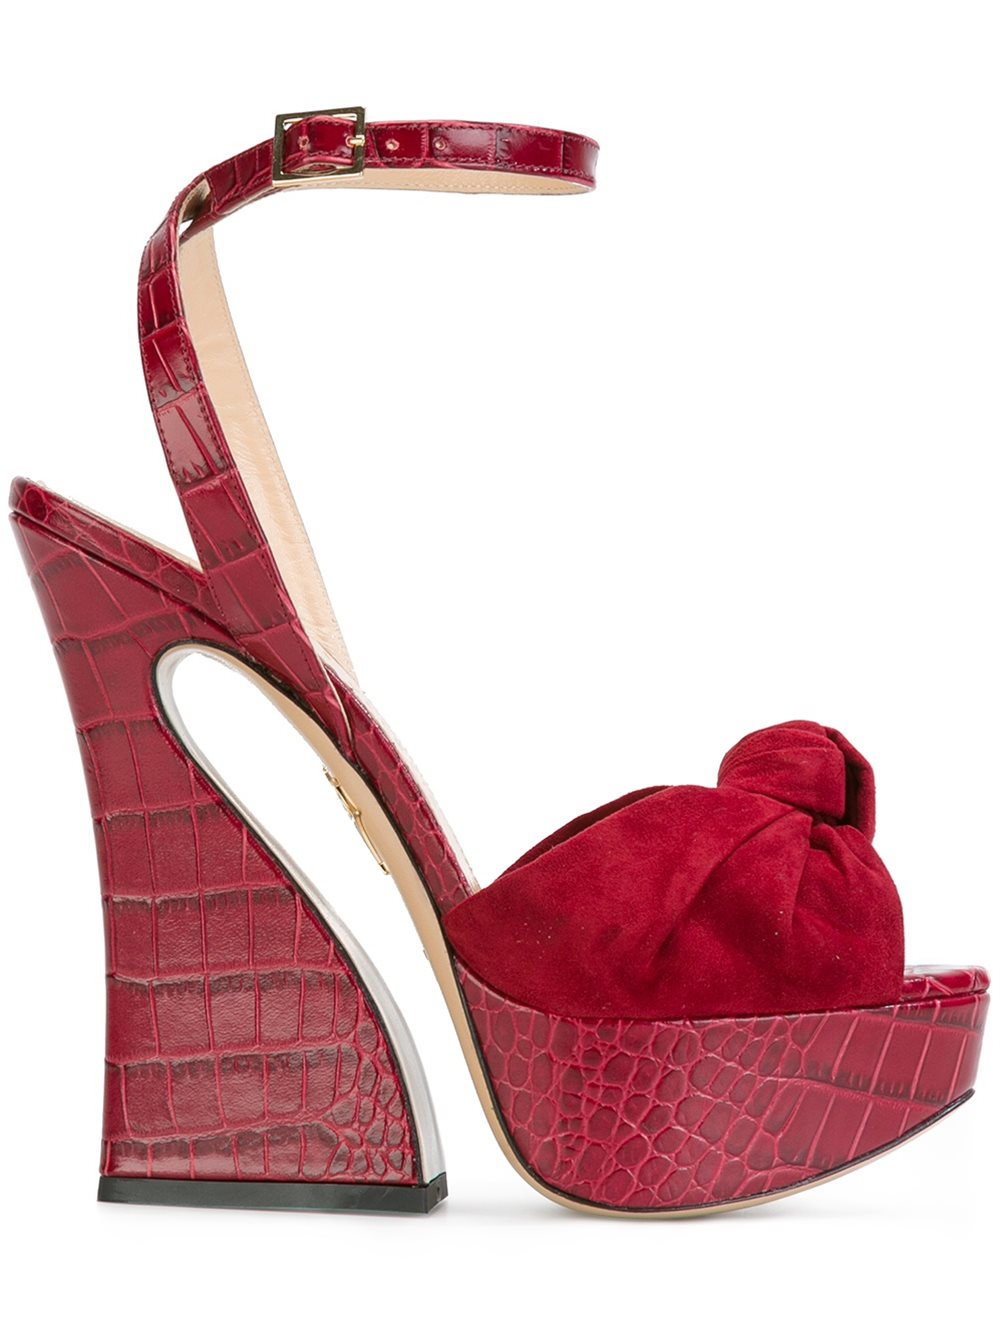 Thom Browne Red Platform Vreeland Sandals